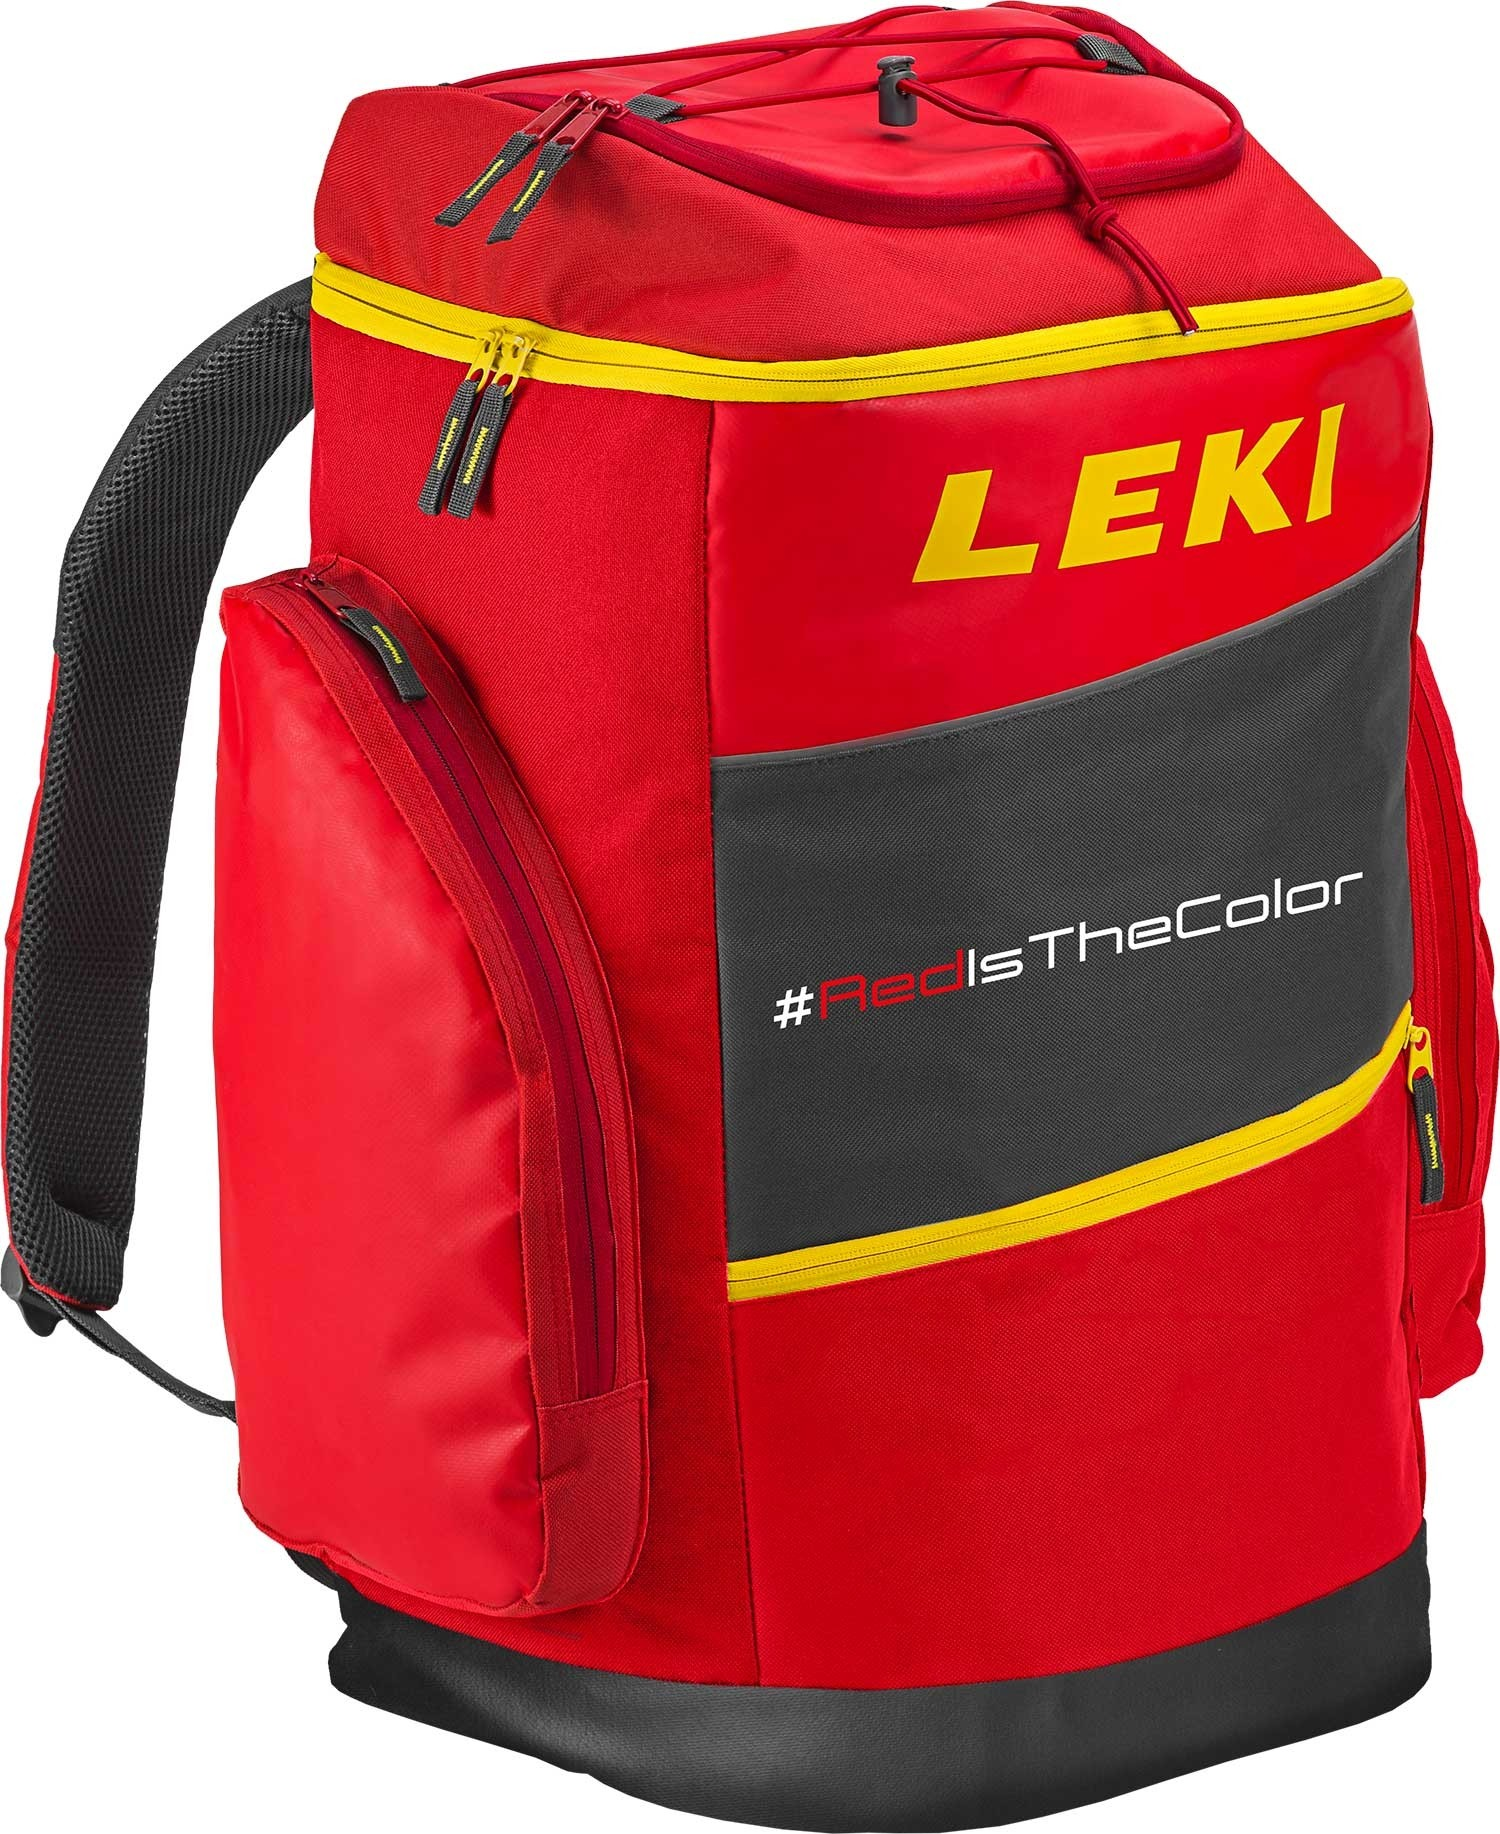 Leki race boot bag red is the colour